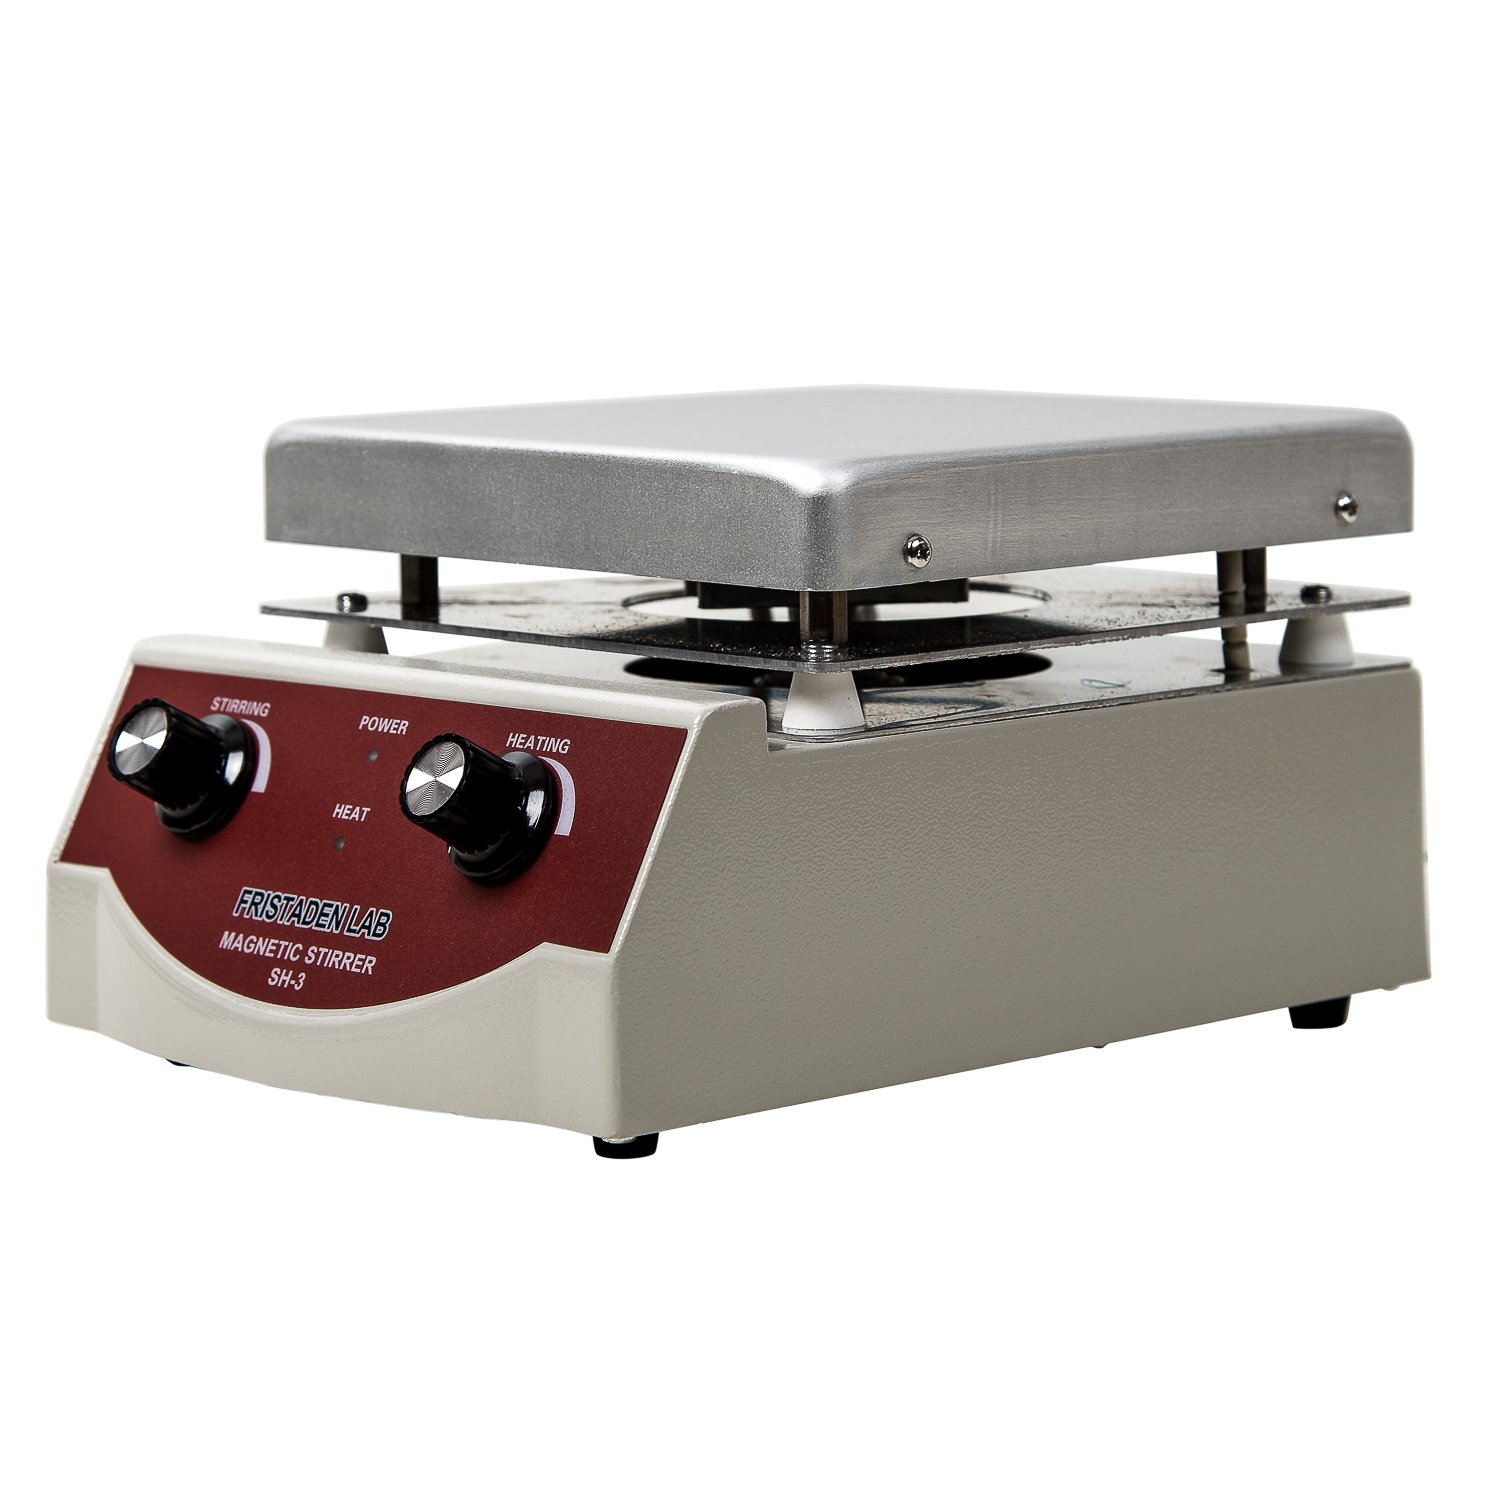 Fristaden Lab SH-3 Magnetic Stirrer Hot Plate, Stir Plate, Magnetic Mixer Dual Controls for Heating and Stirring 3,000mL, 100-1600rpm, 500W, 350°C by Fristaden Lab (Image #1)